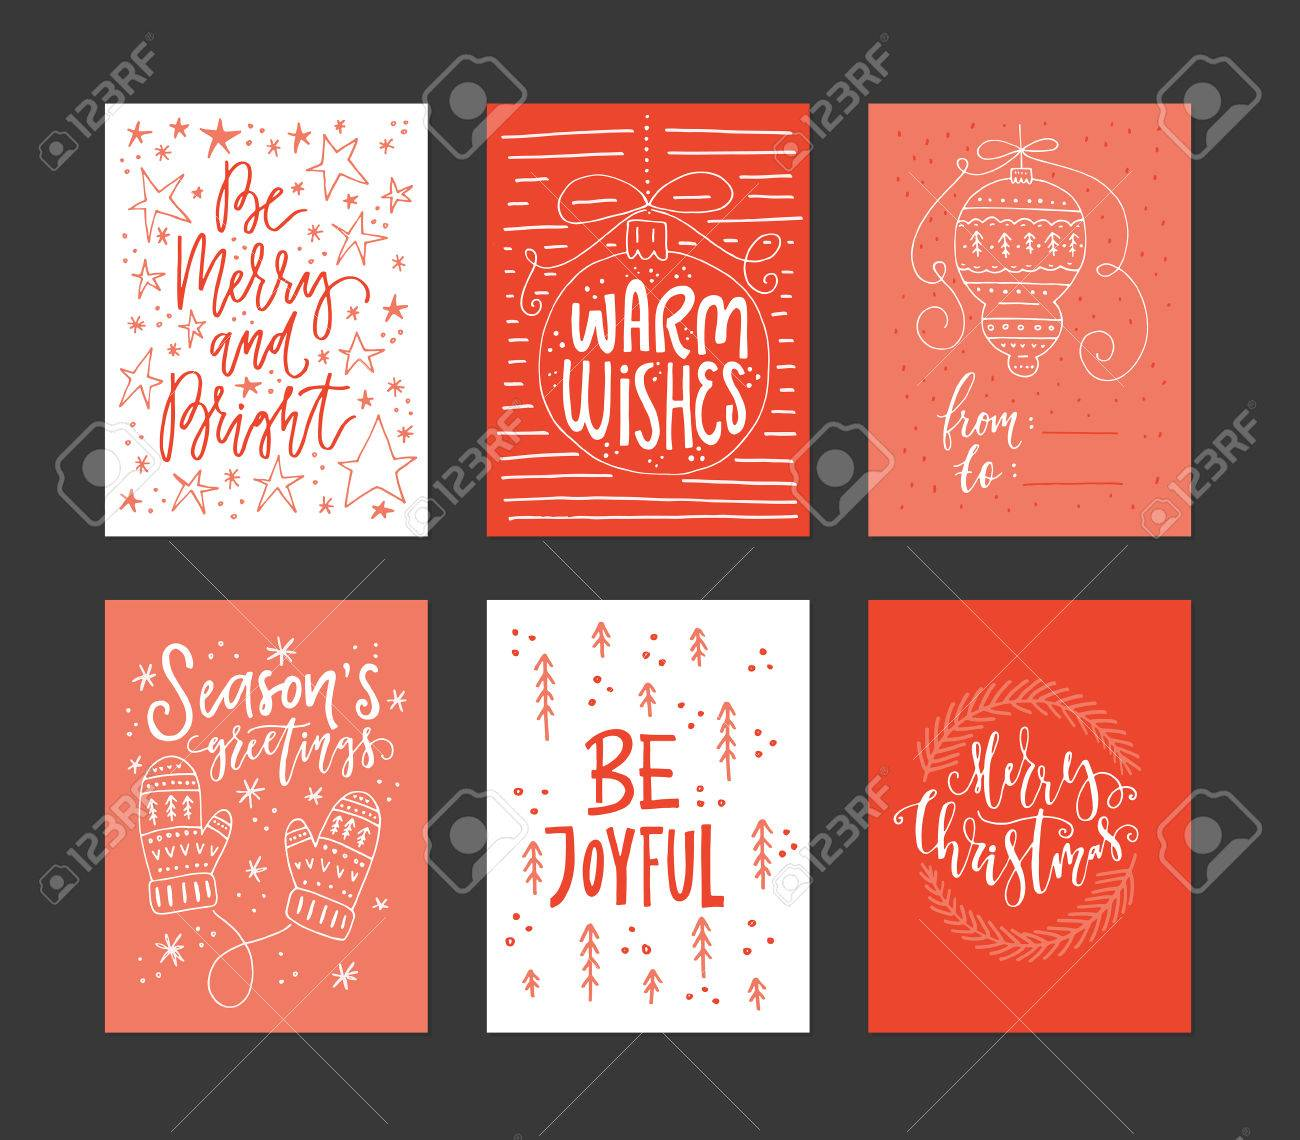 Christmas Card Templates.Collection Of Handdrawn Christmas Card Templates New Year Present